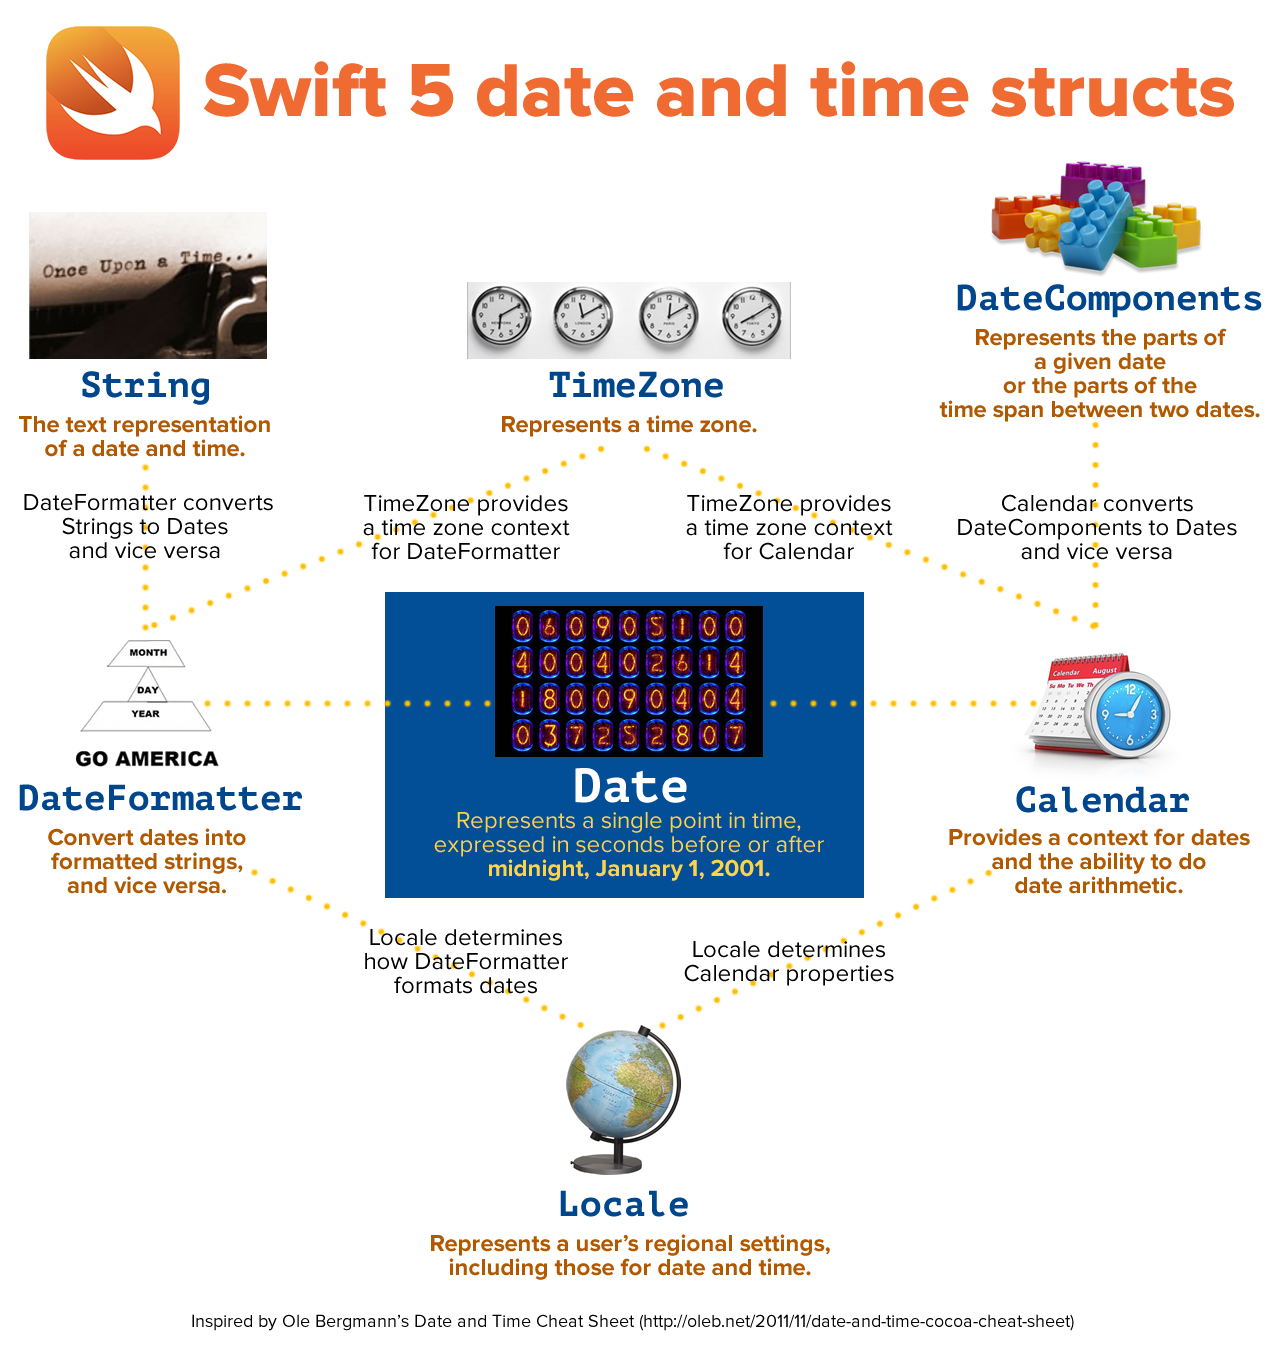 Diagram showing the structs used when working with dates and times in Swift 5